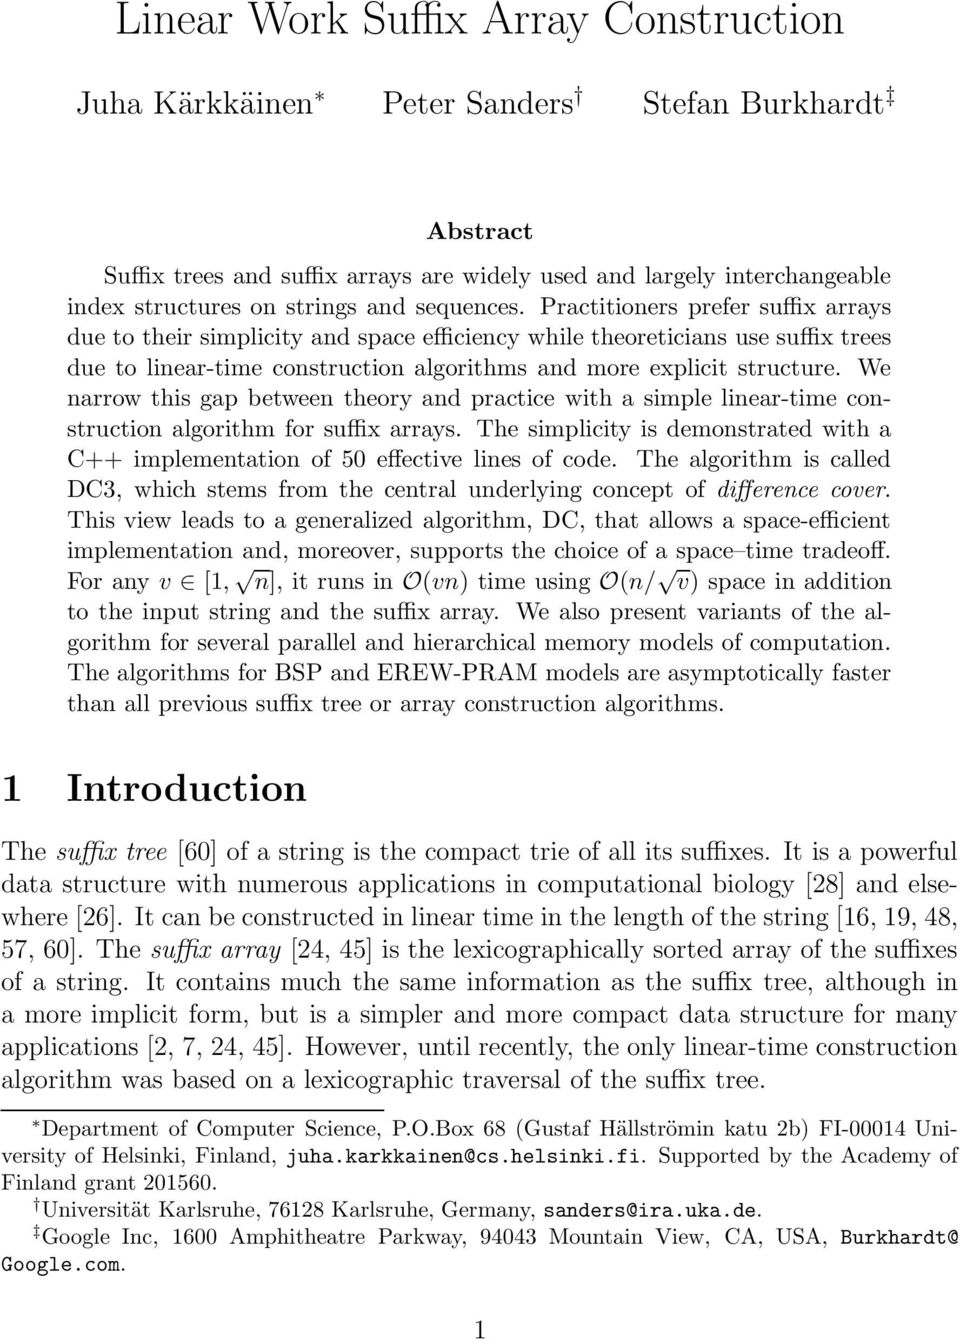 Practitioners prefer suffix arrays due to their simplicity and space efficiency while theoreticians use suffix trees due to linear-time construction algorithms and more explicit structure.